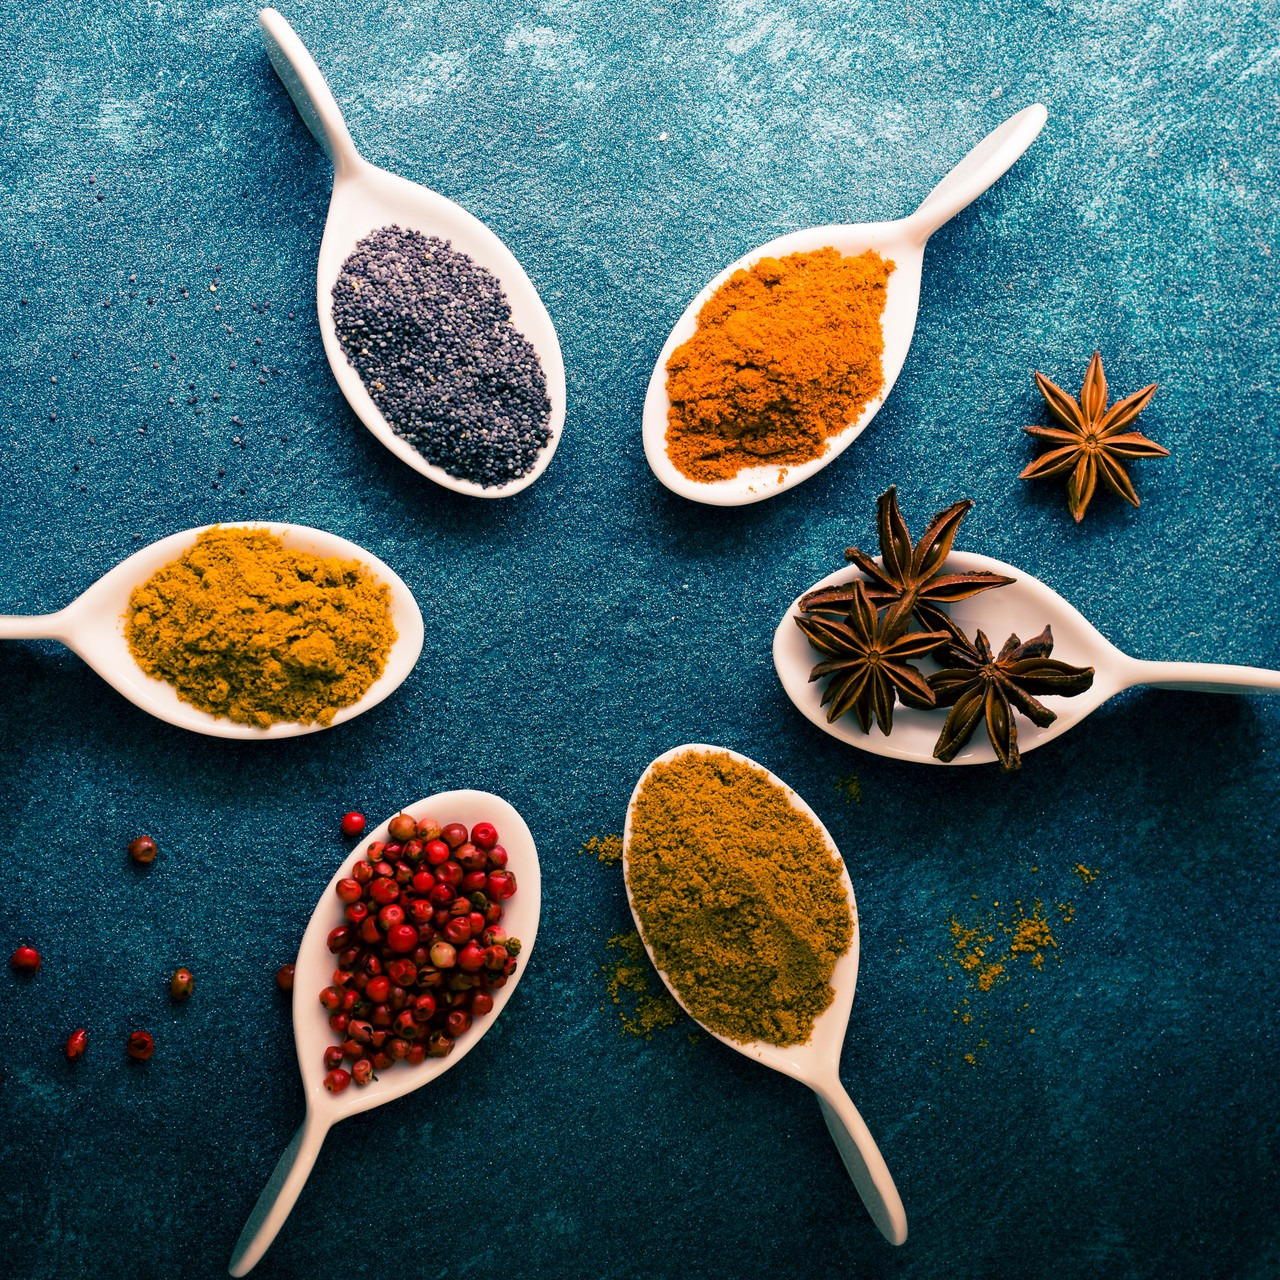 <b><font size=3>Spices & SEEDS</font></b>